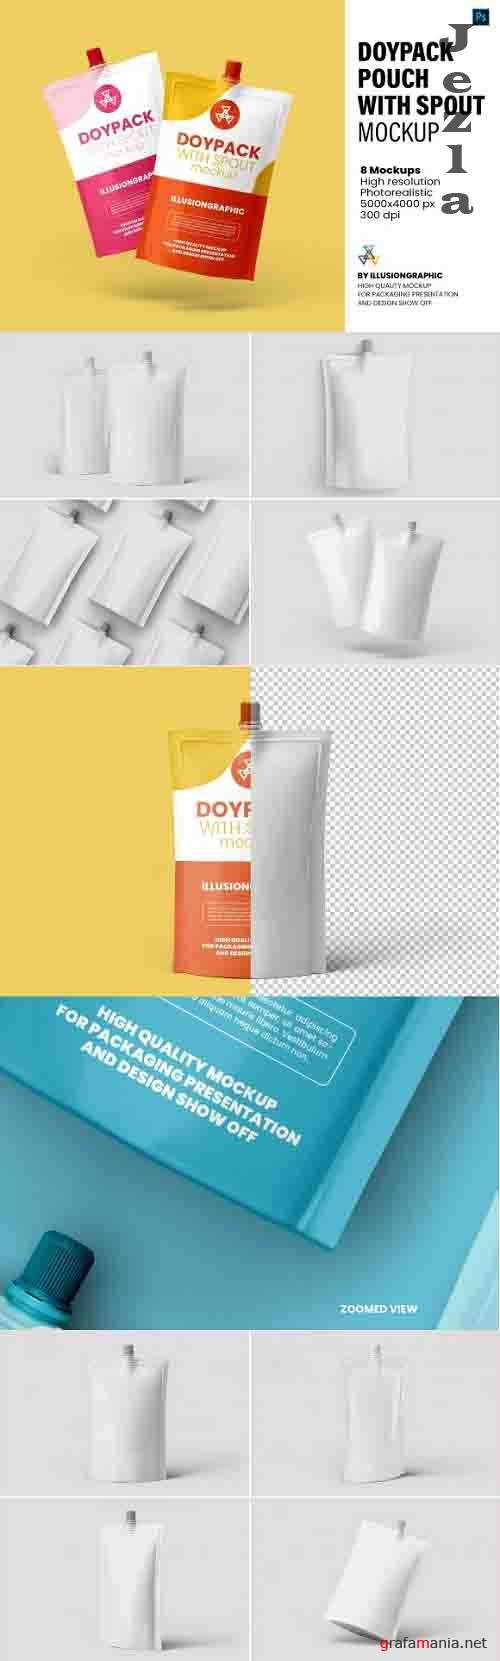 Doypack Pouch with Spout Mockup - 8 View